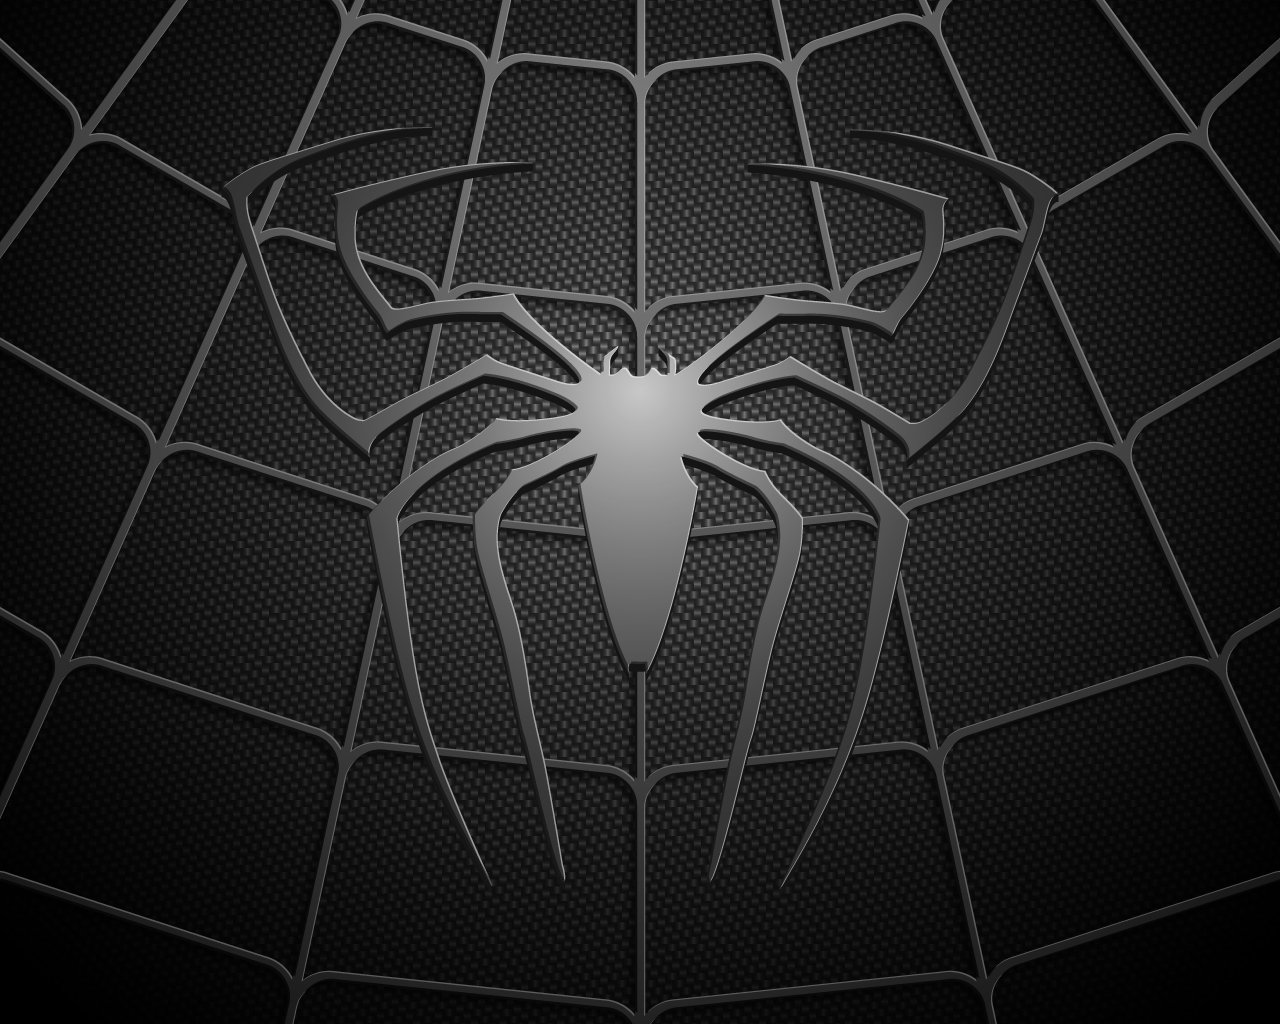 Free Download 787 Spider Man Hd Wallpapers Background Images